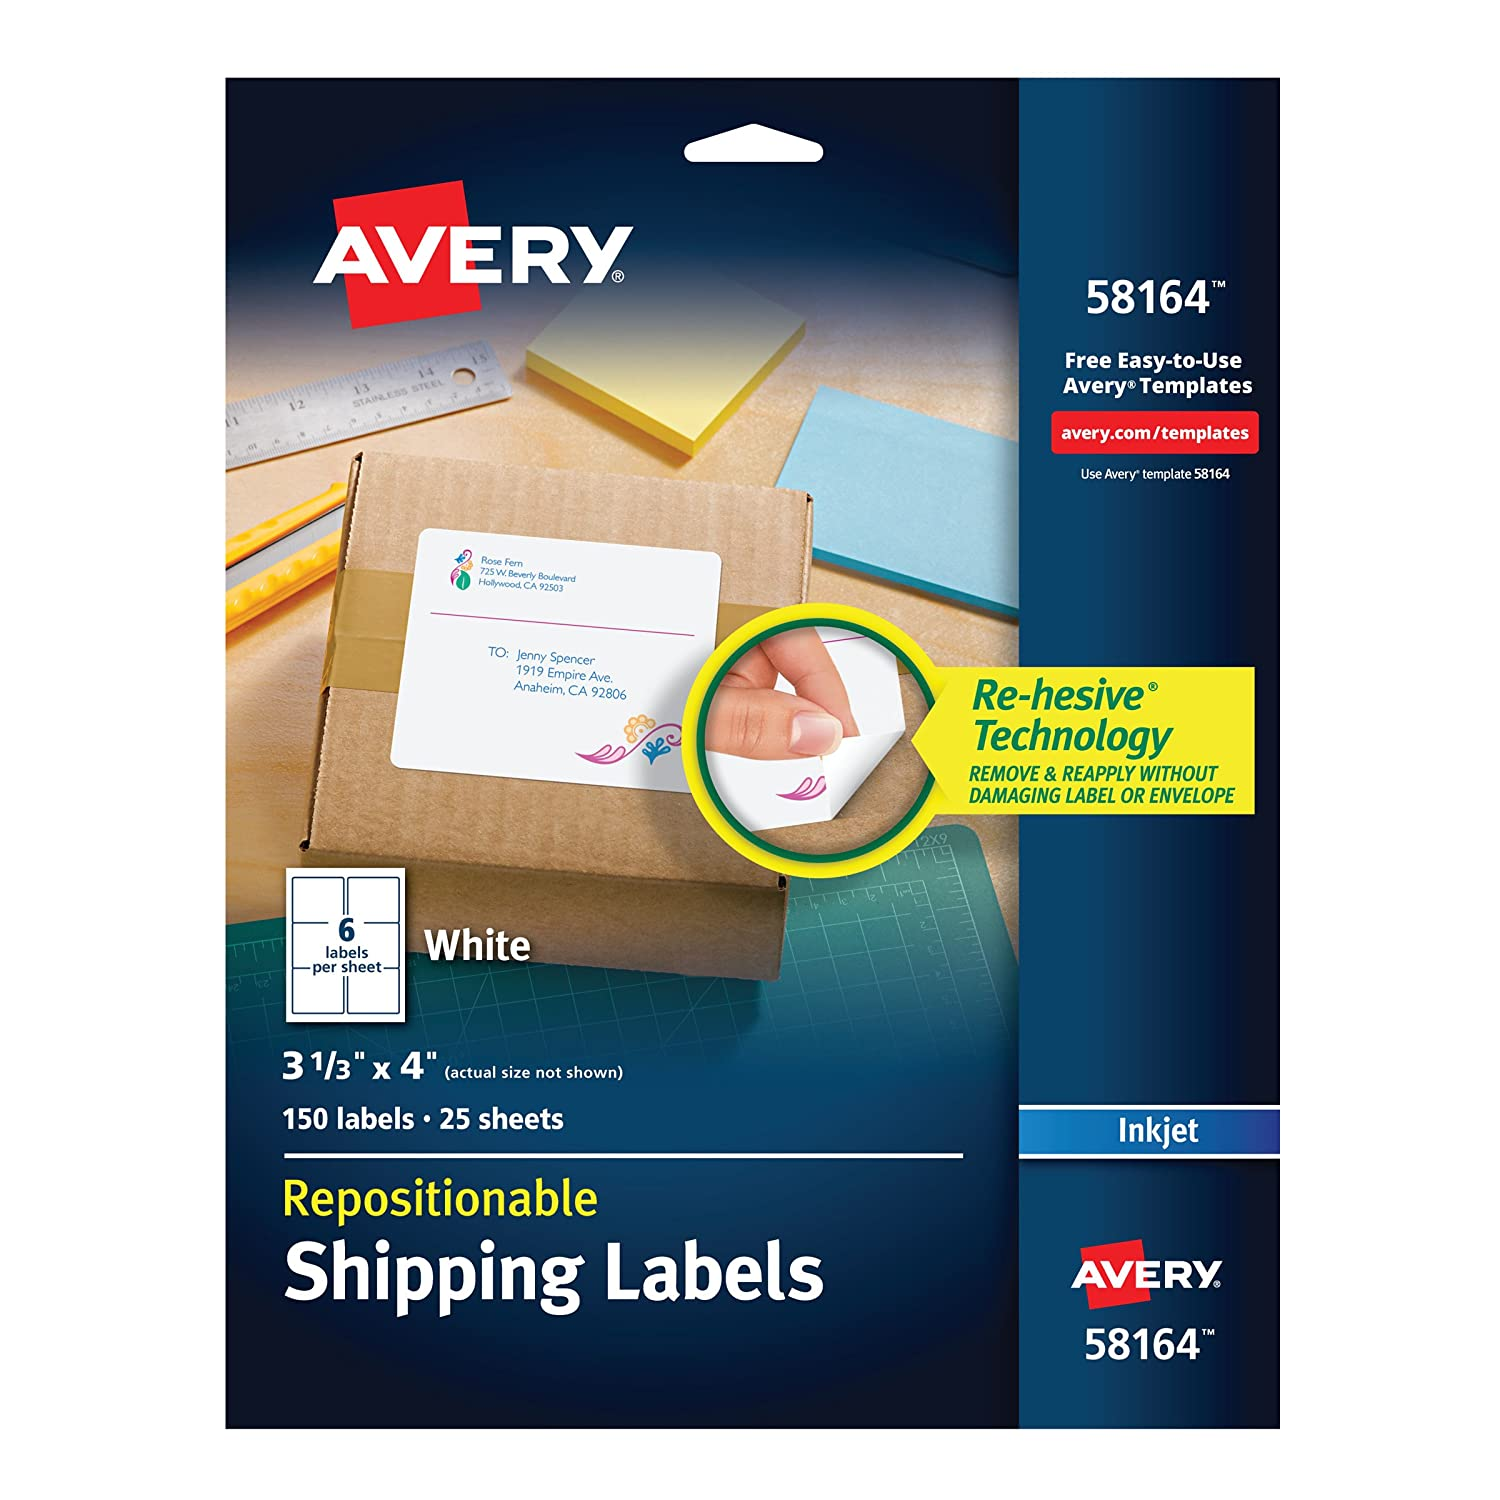 Avery Labels 5264 Template Yelomphonecompany